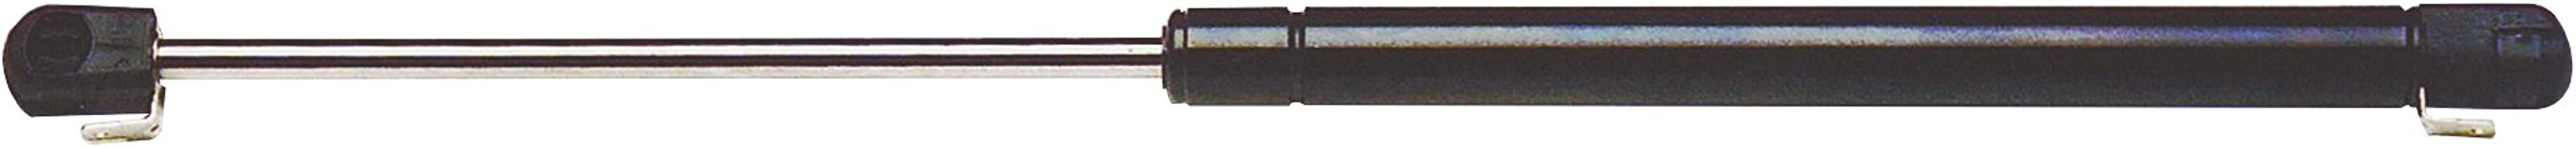 StrongArm 4451 Chevrolet S10 Blazer 2 & 4 Door w/Rear Defroster Glass Lift Support 1983-94, Pack of 1